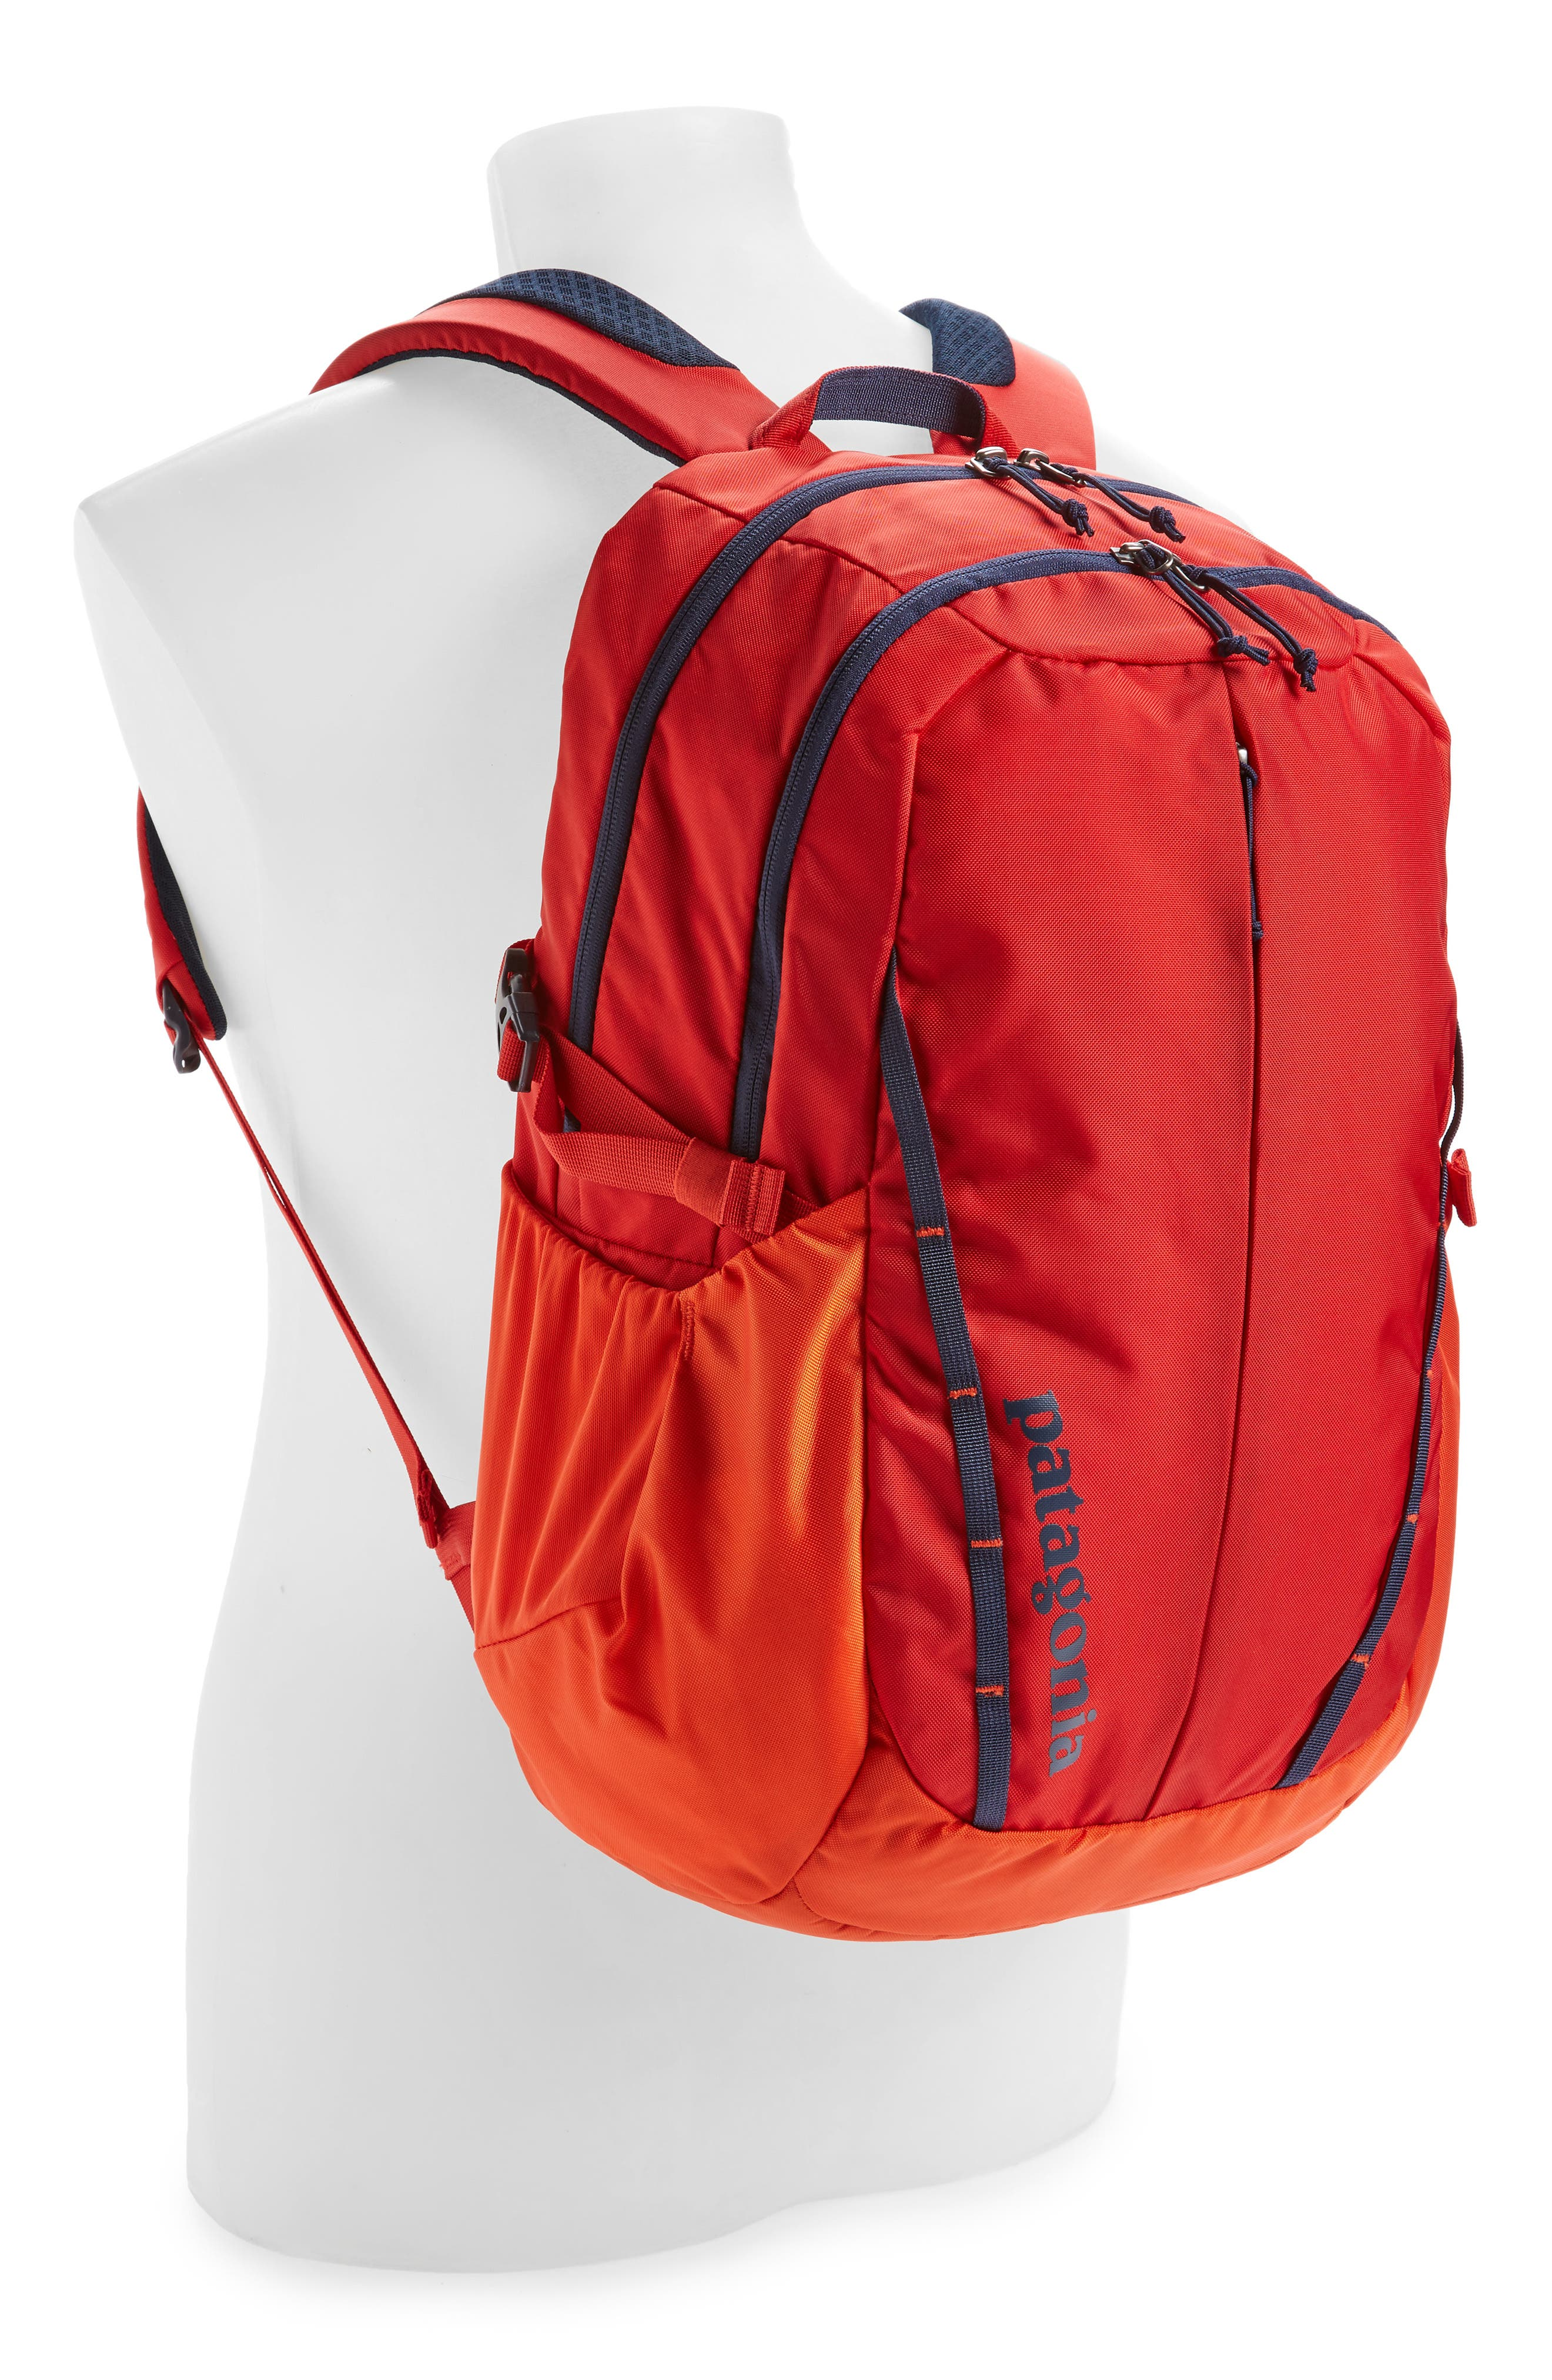 28L Refugio Backpack,                             Alternate thumbnail 2, color,                             Paintbrush Red